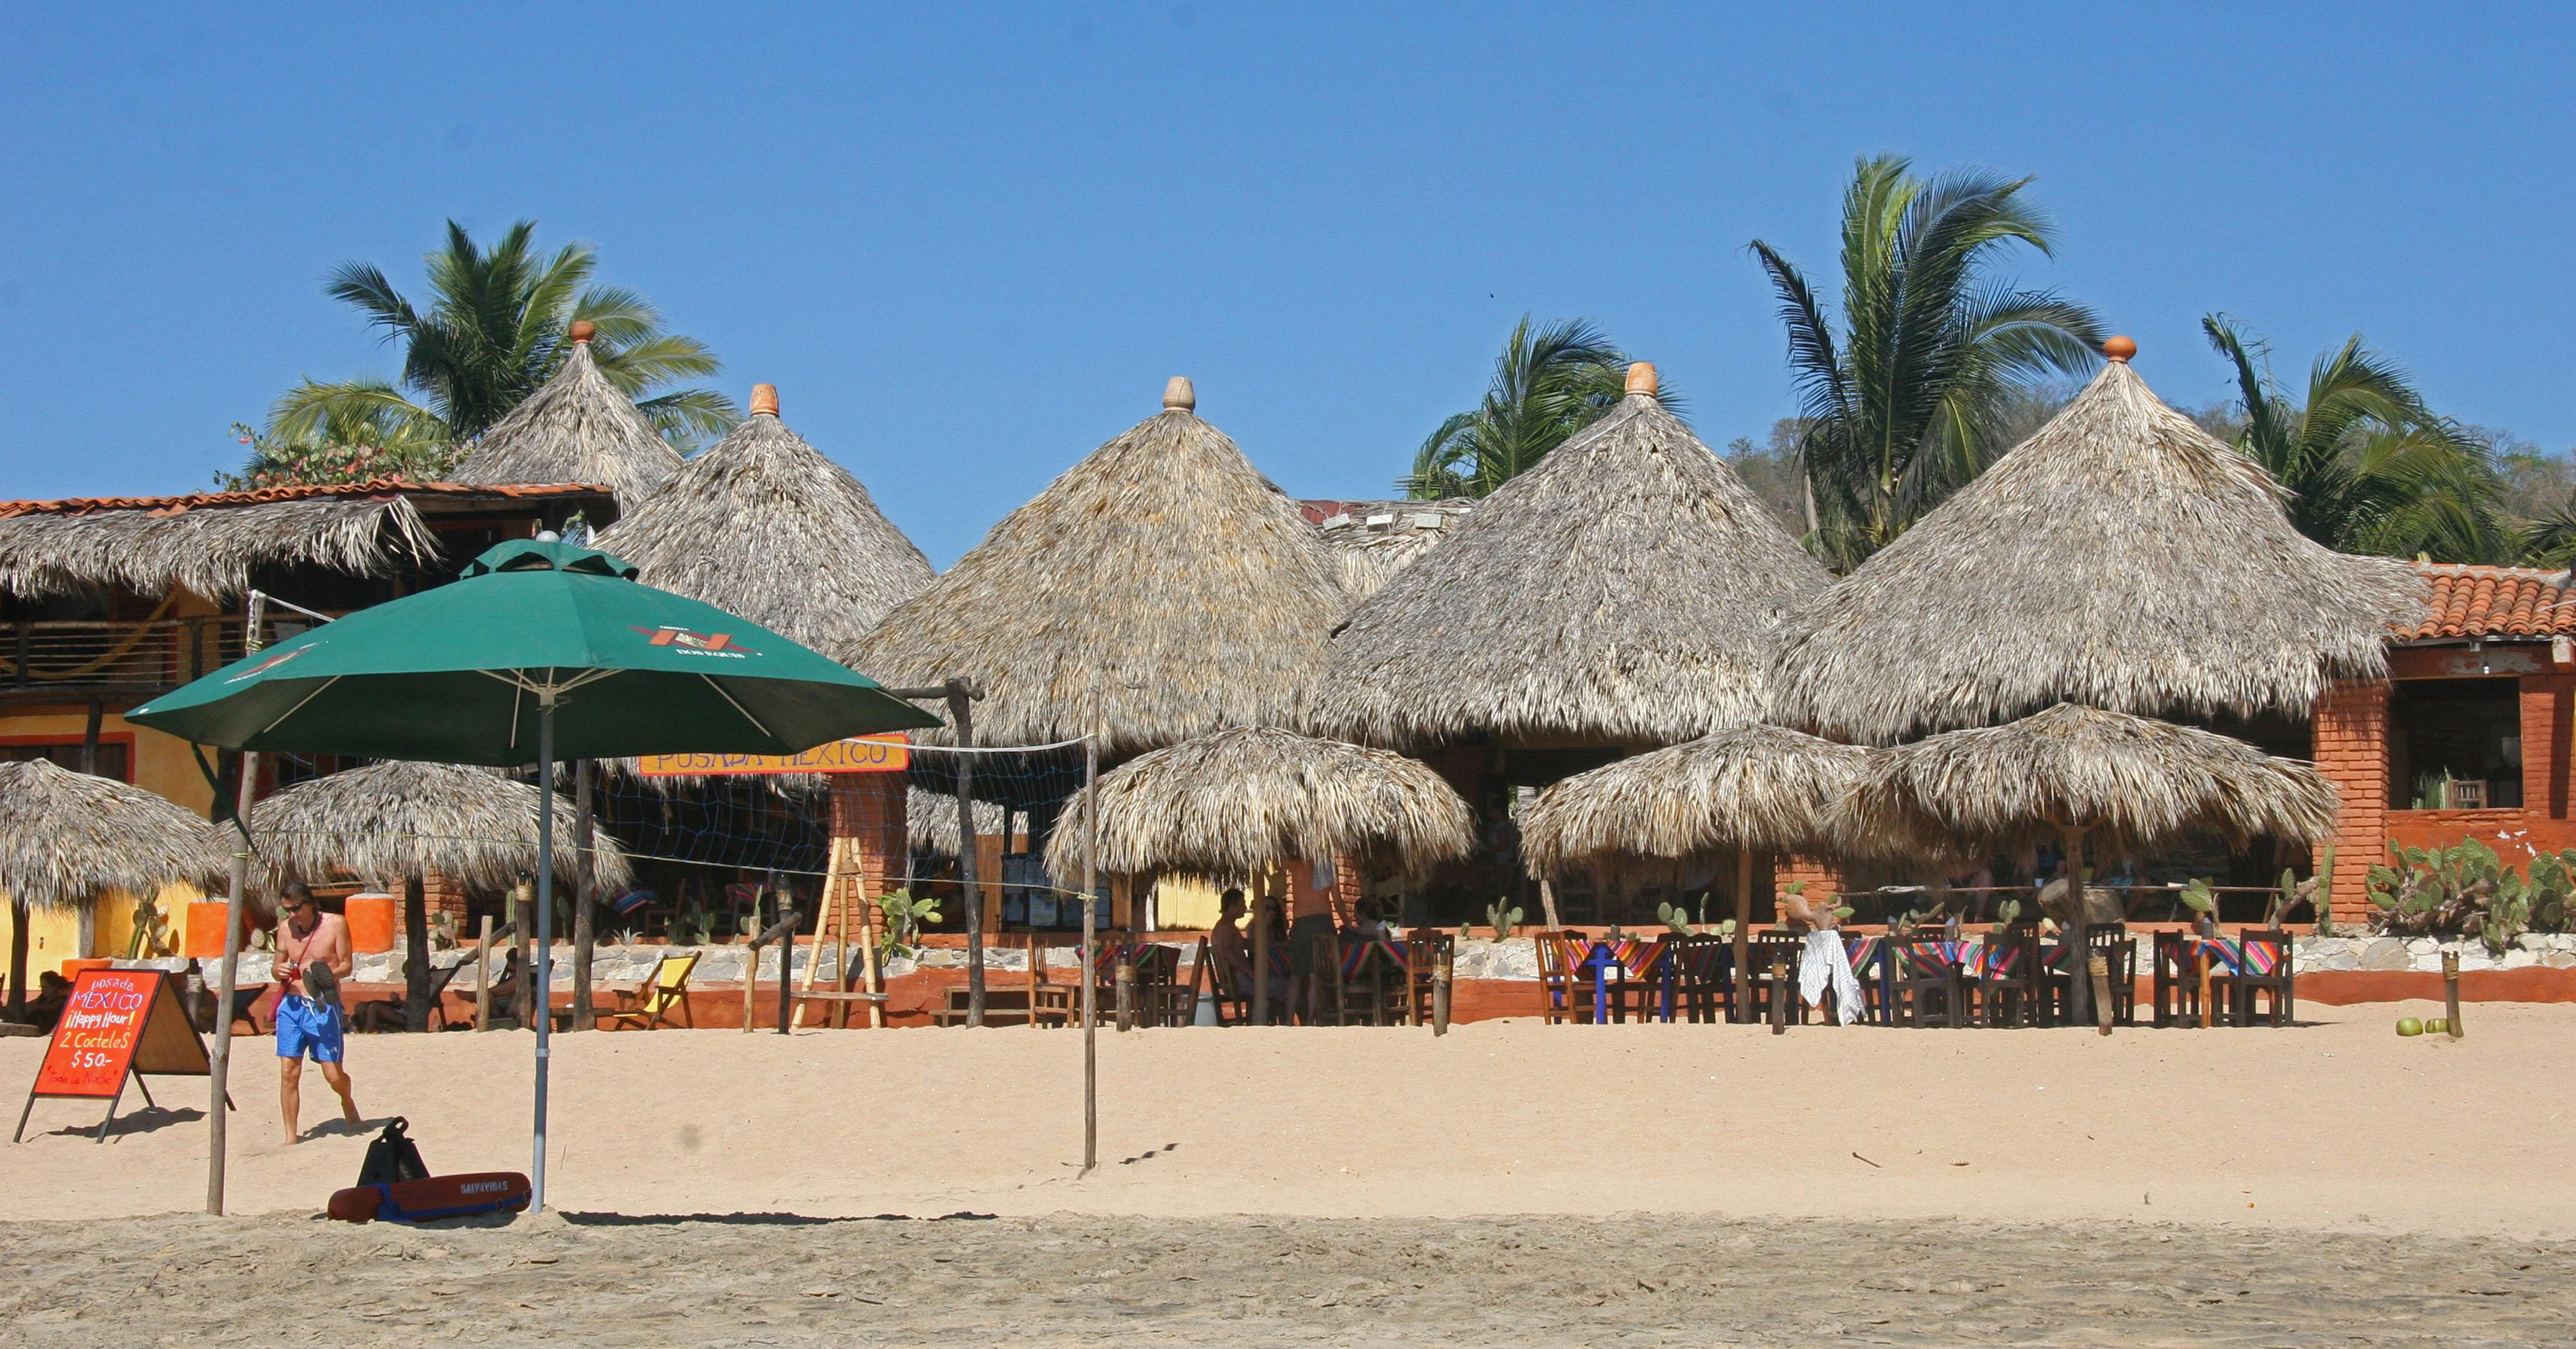 This Dec. 28, 2012 photo shows visitors relaxing at beachfront tables at the Posada Mexico restaurant in Zipolite, Mexico. A sleepy town with one main street and no ATMs, Zipolite is one many tiny coastal pueblos that dot the Pacific in Mexico's Southern state of Oaxaca. (AP Photo/Jody Kurash)